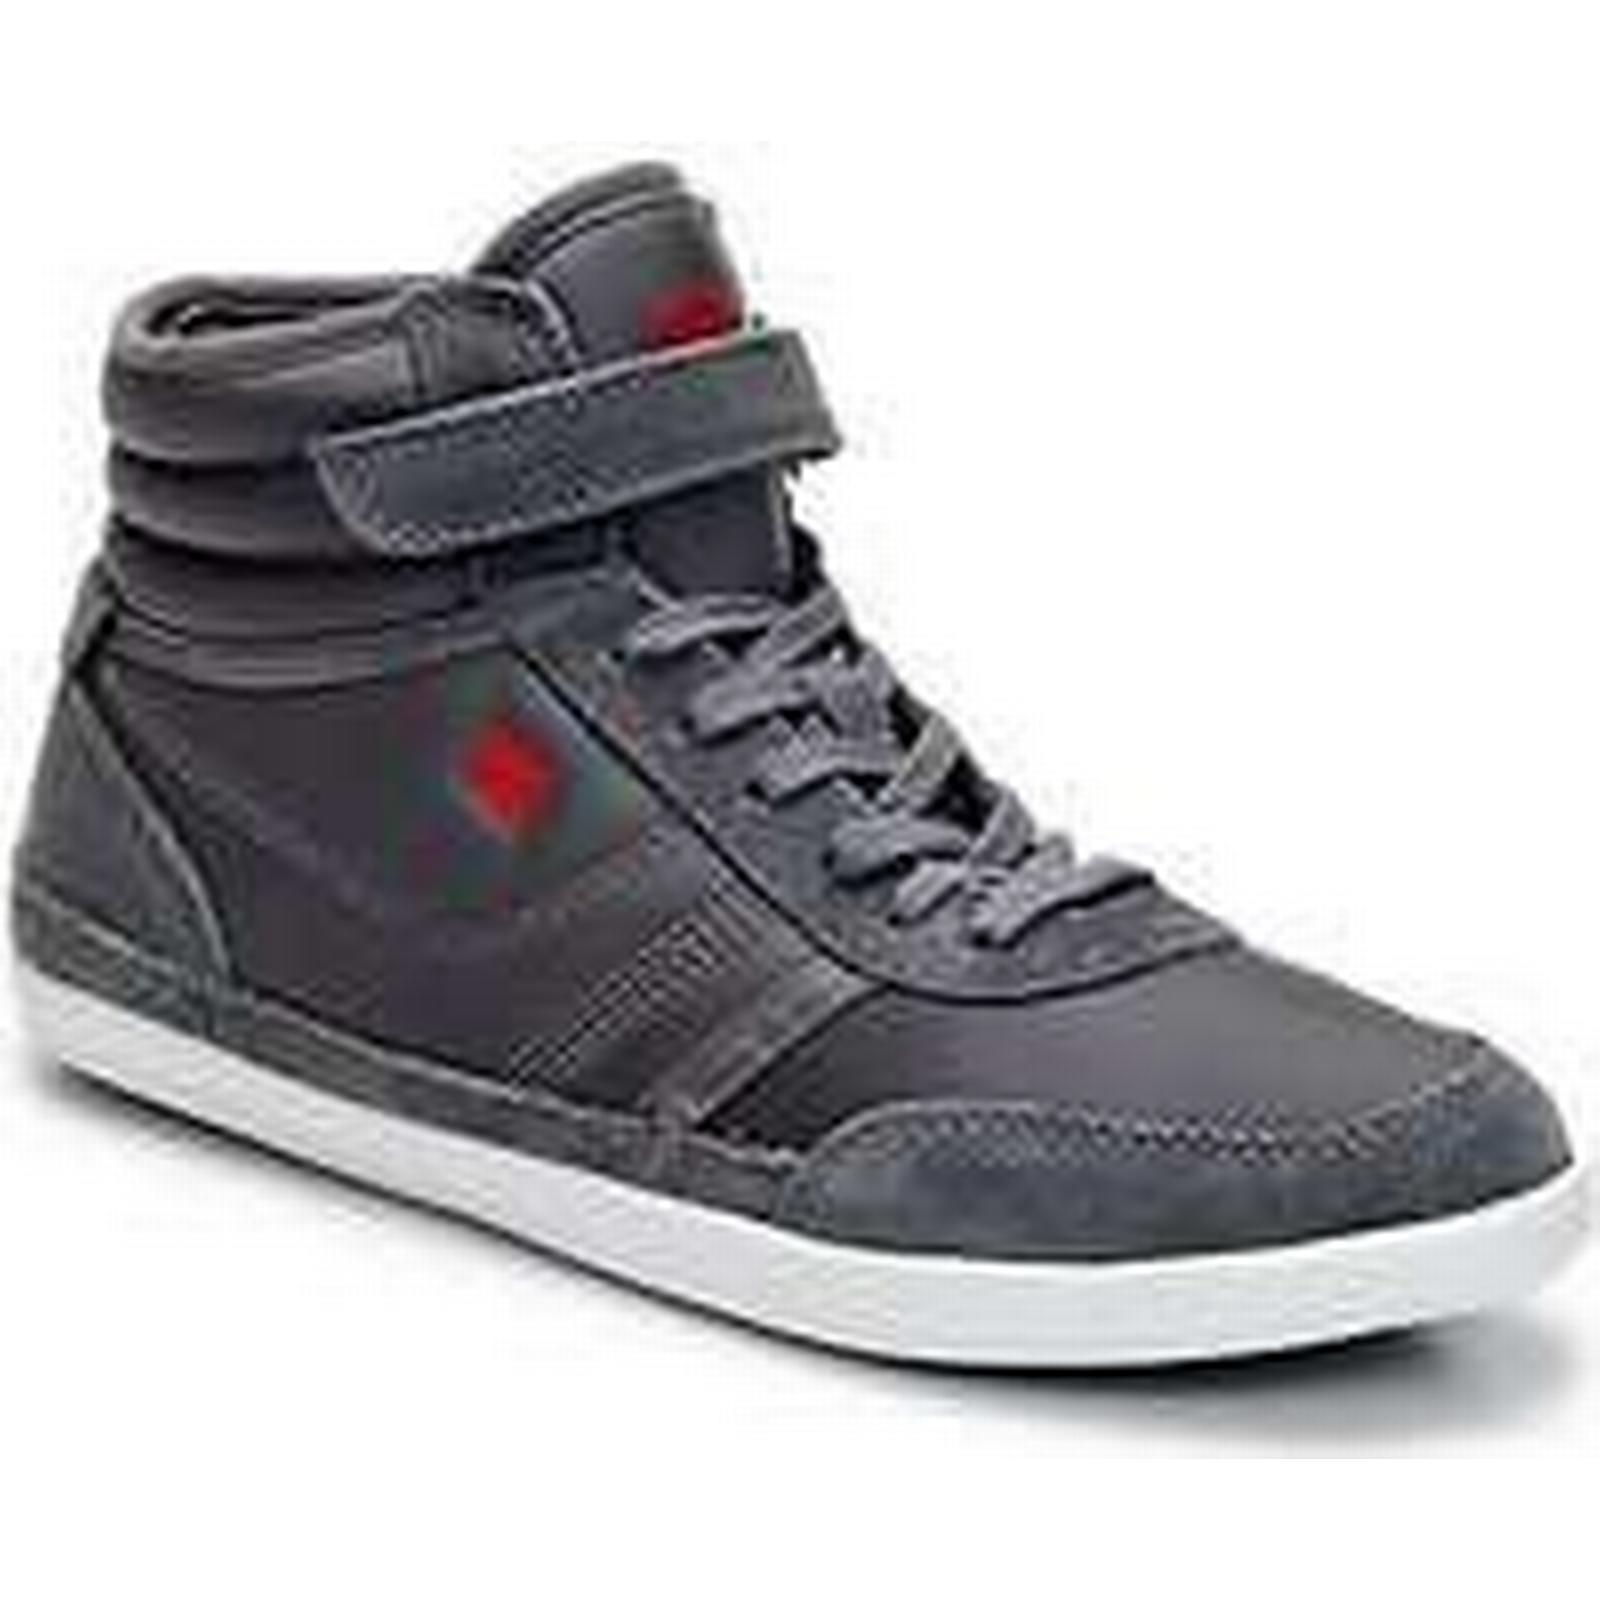 Spartoo.co.uk Dorotennis Shoes MONTANTE STREET VELCROS women's Shoes Dorotennis (High-top Trainers) in Grey 7c1f2e